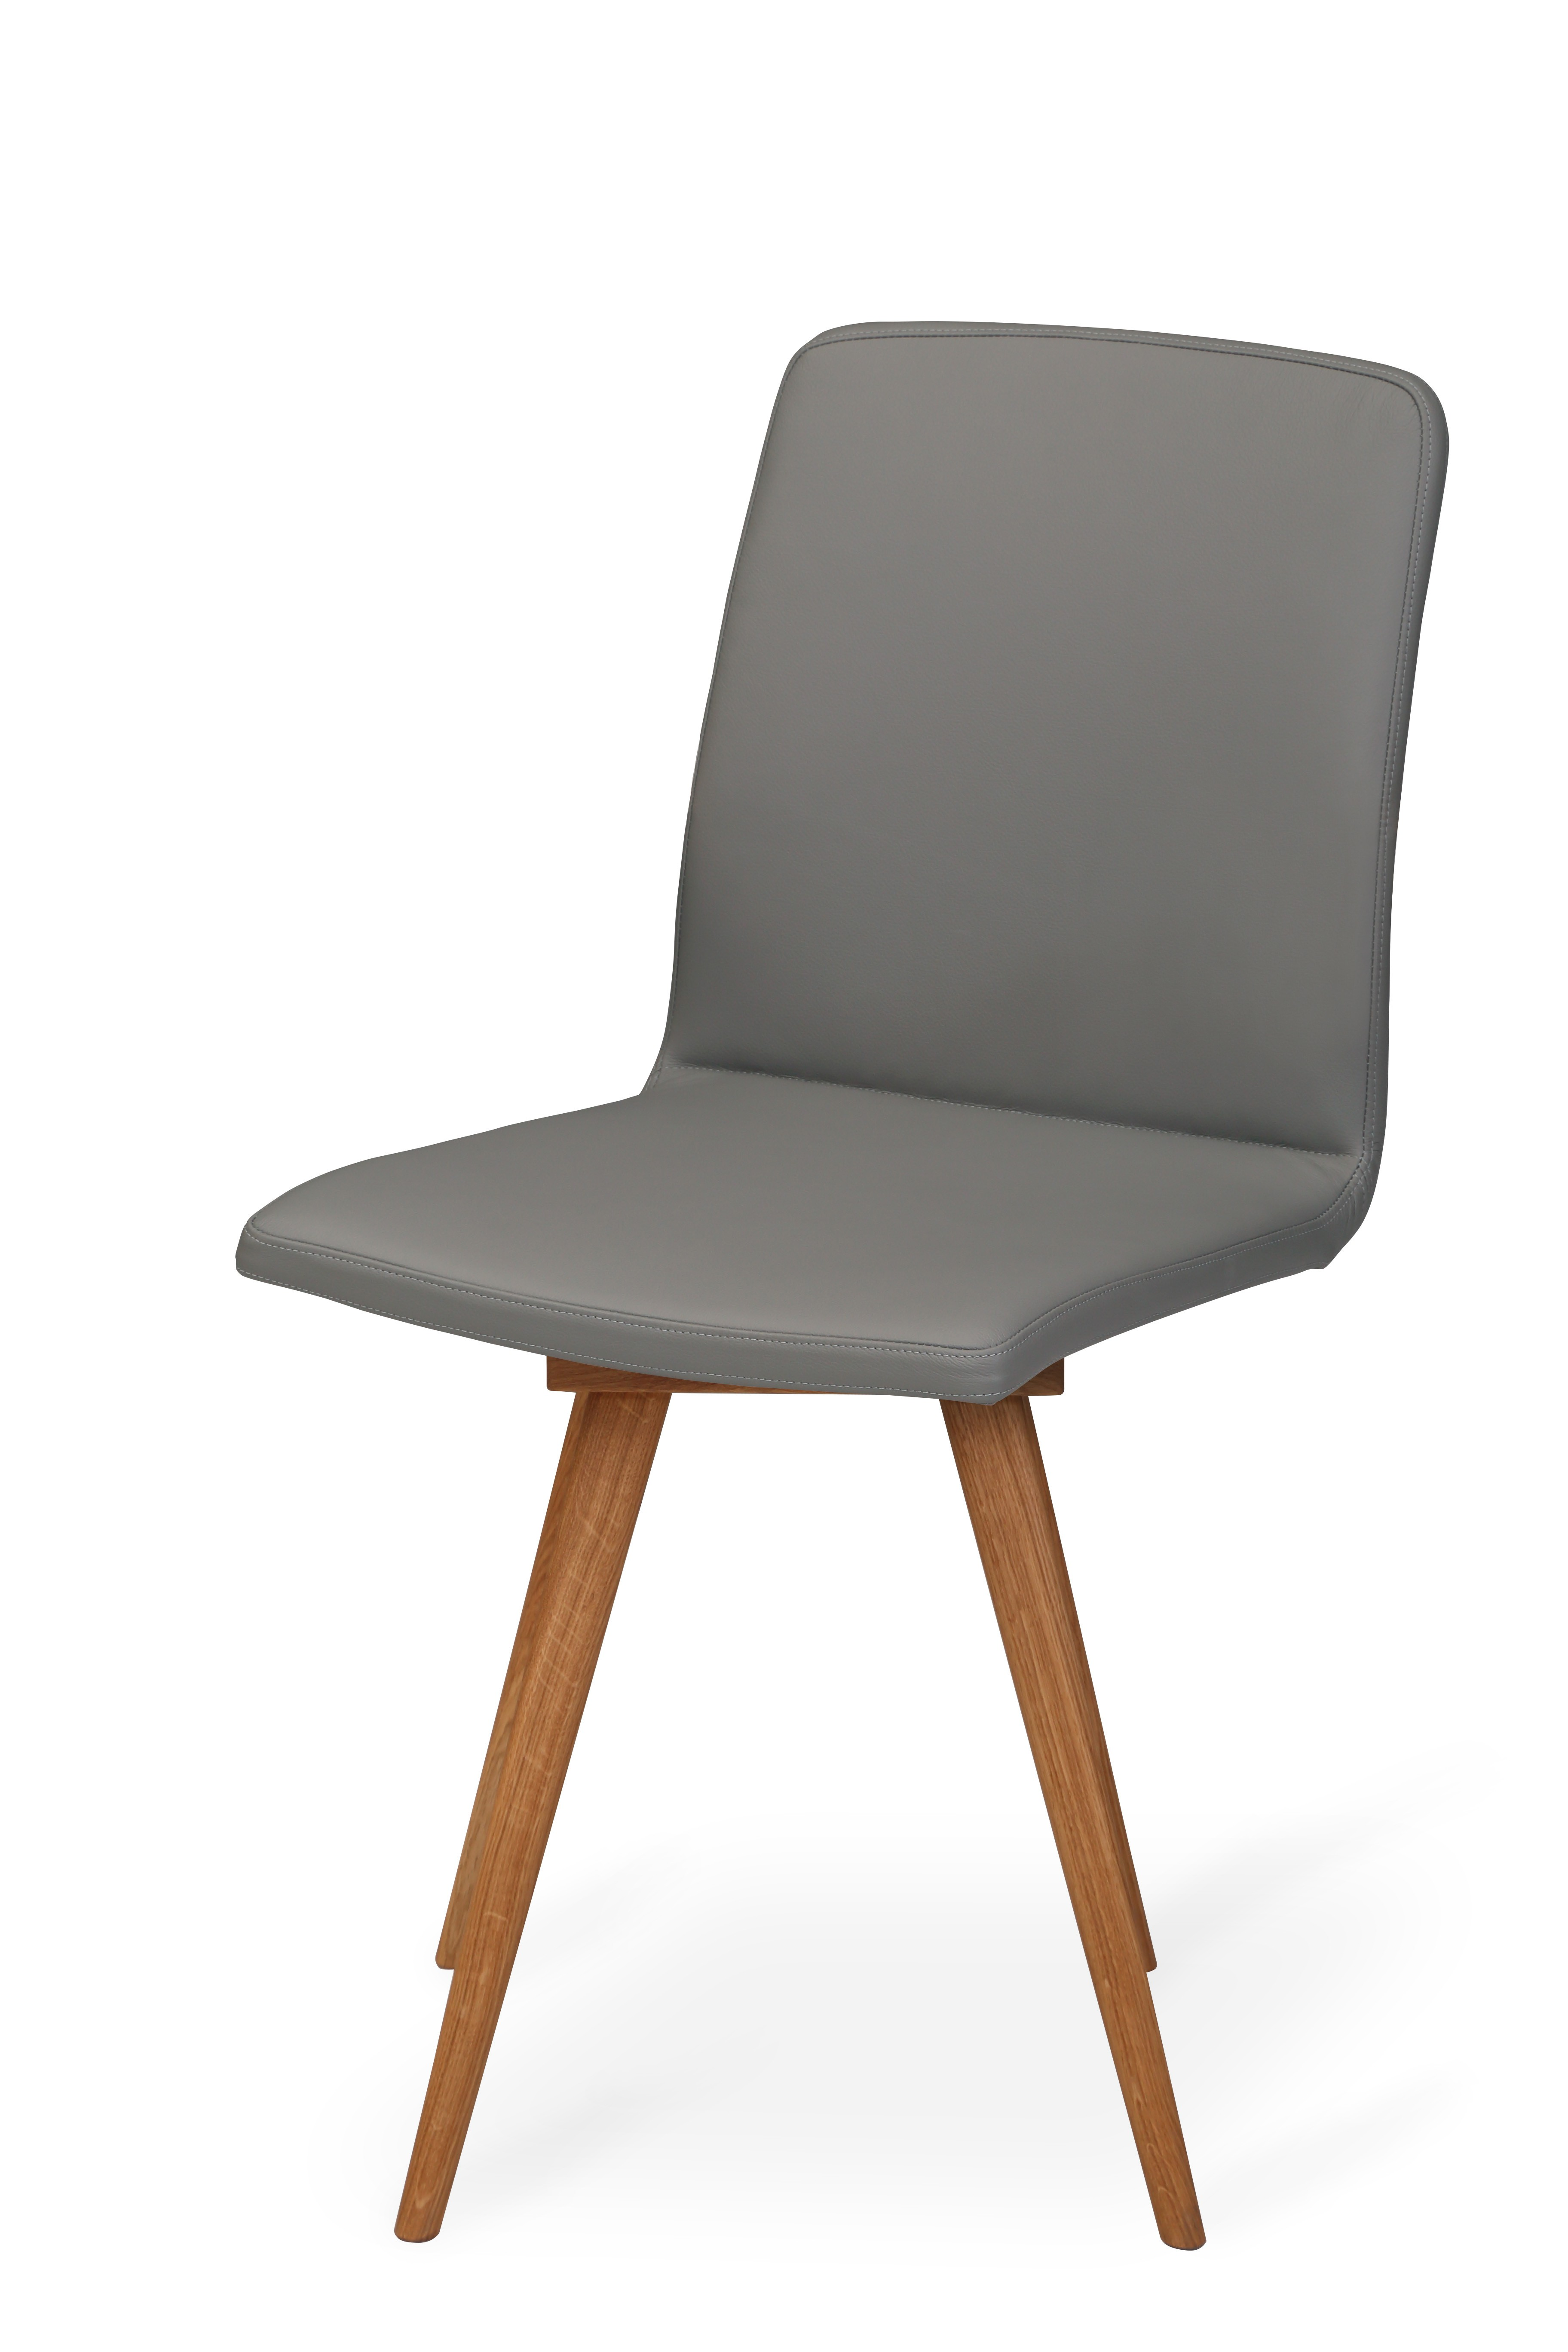 GATTA VORTA CHAIR WHOLLY UPHOLSTERED